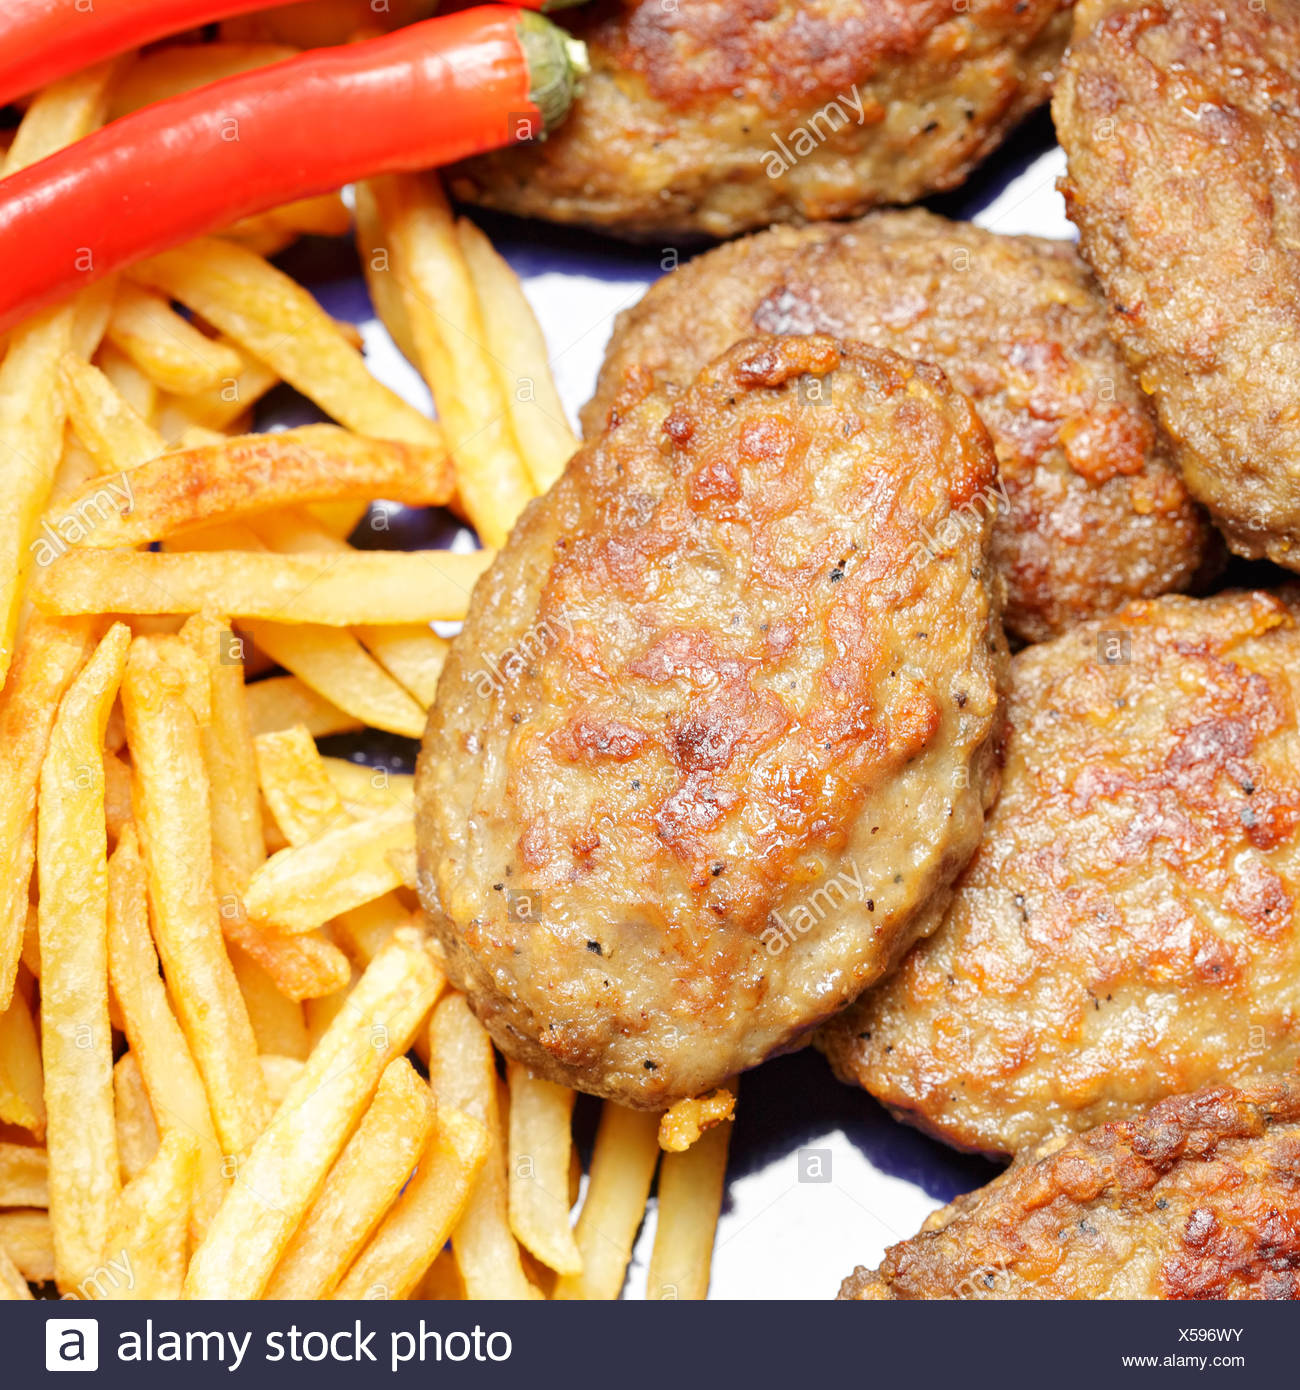 Cutlets with french fries and chili - Stock Image